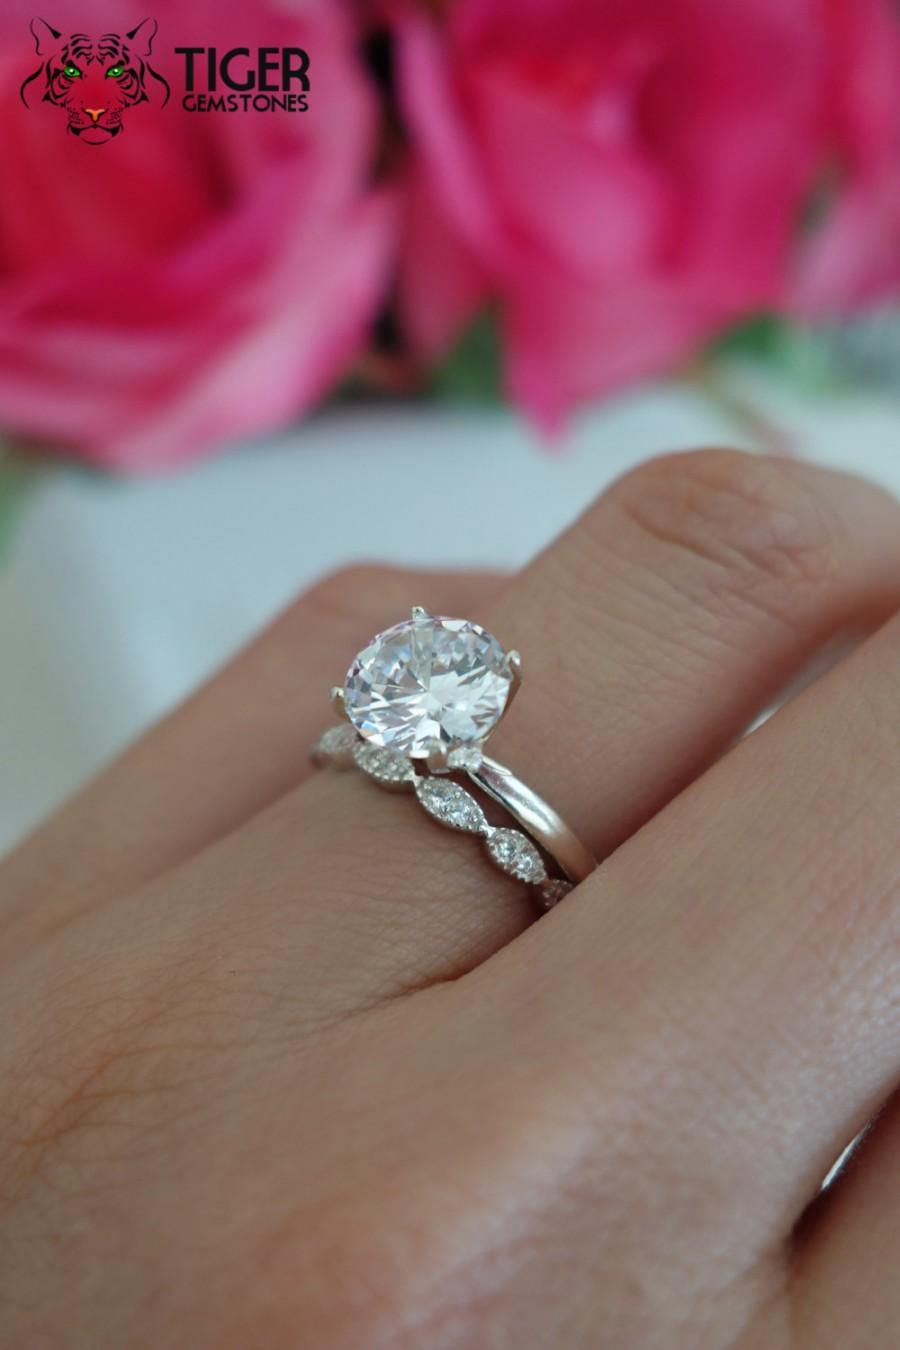 solitaire of wedding inspirational ring prong man ct diamond new engagement carat made platinum cushion brilliant